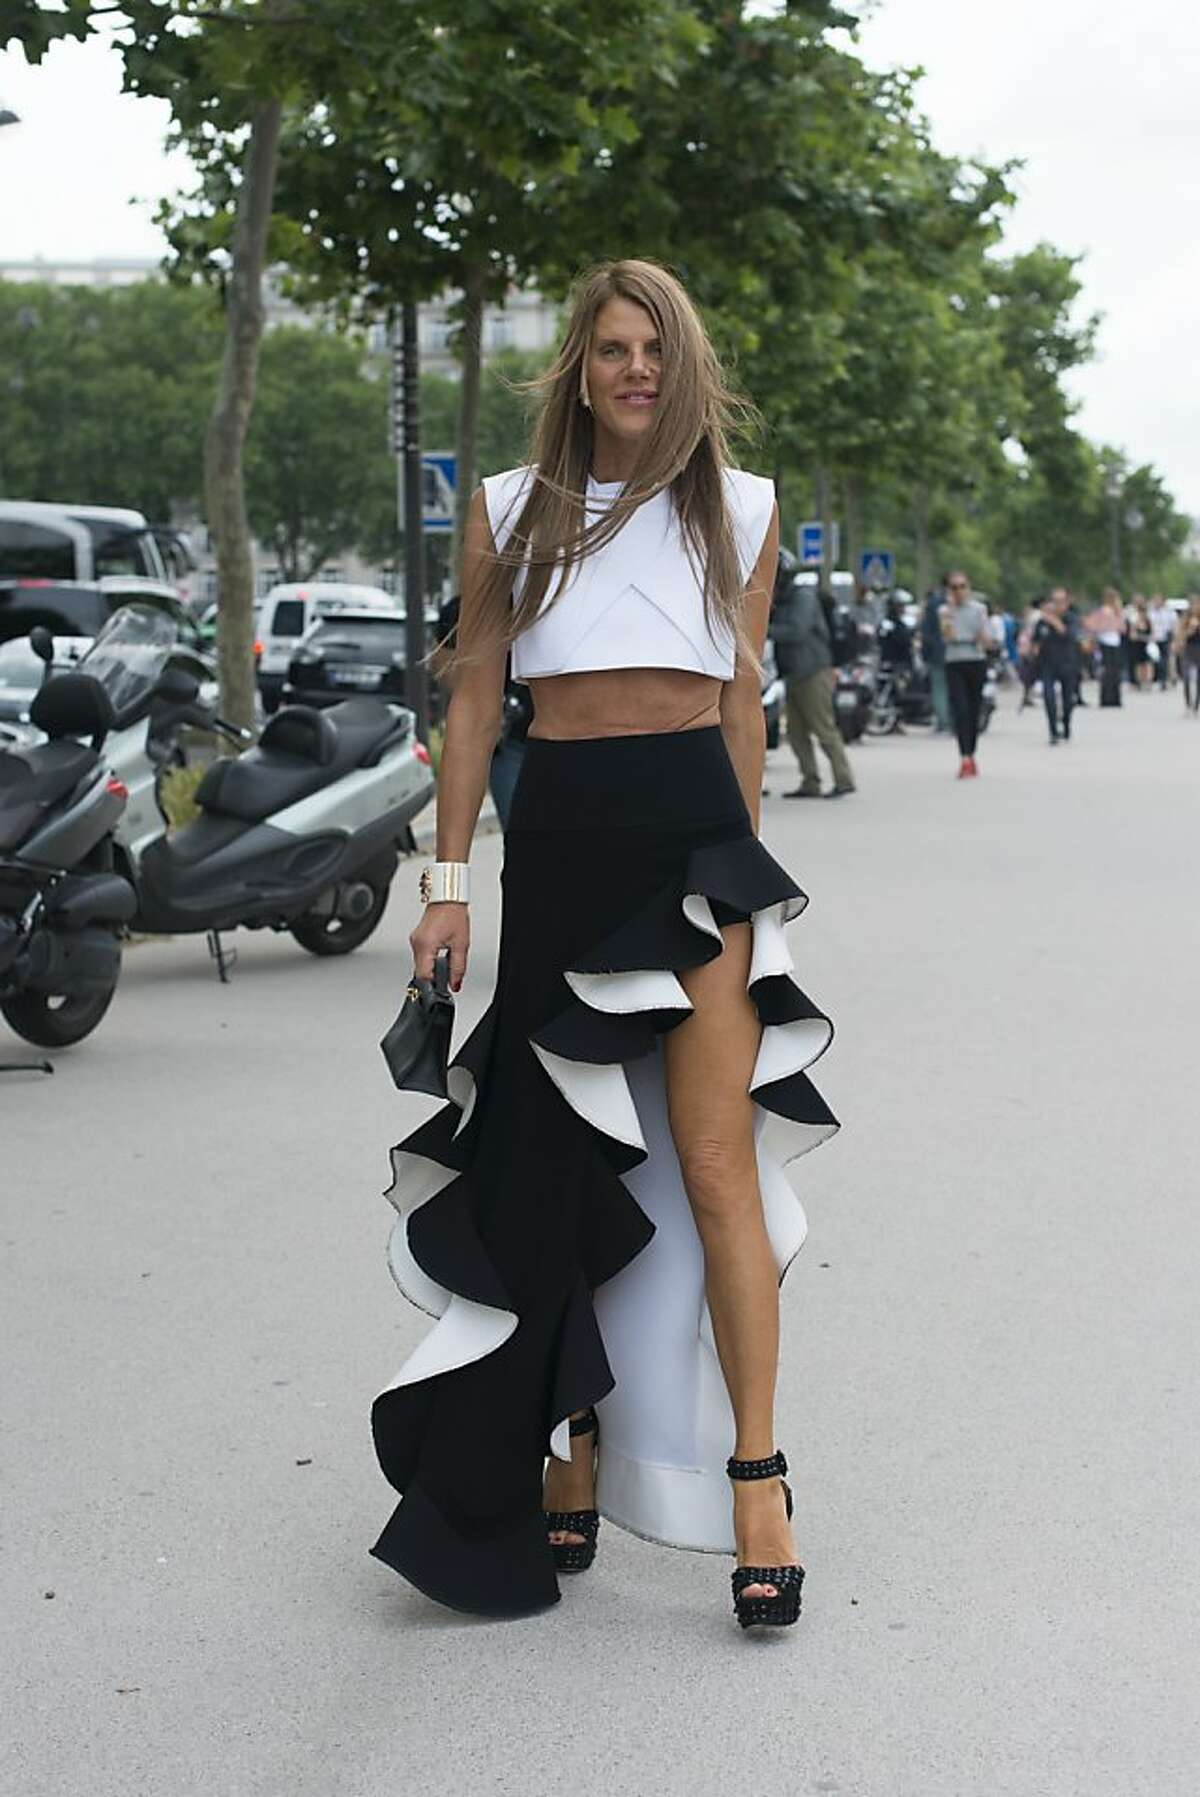 Editor at large of Vogue Japan Anna Dello Russo wears a Balenciage top and skirt on day 1 of Paris Collections: Women's Haute Couture on July 01, 2013 in Paris, France. (Photo by Kirstin Sinclair/FilmMagic)